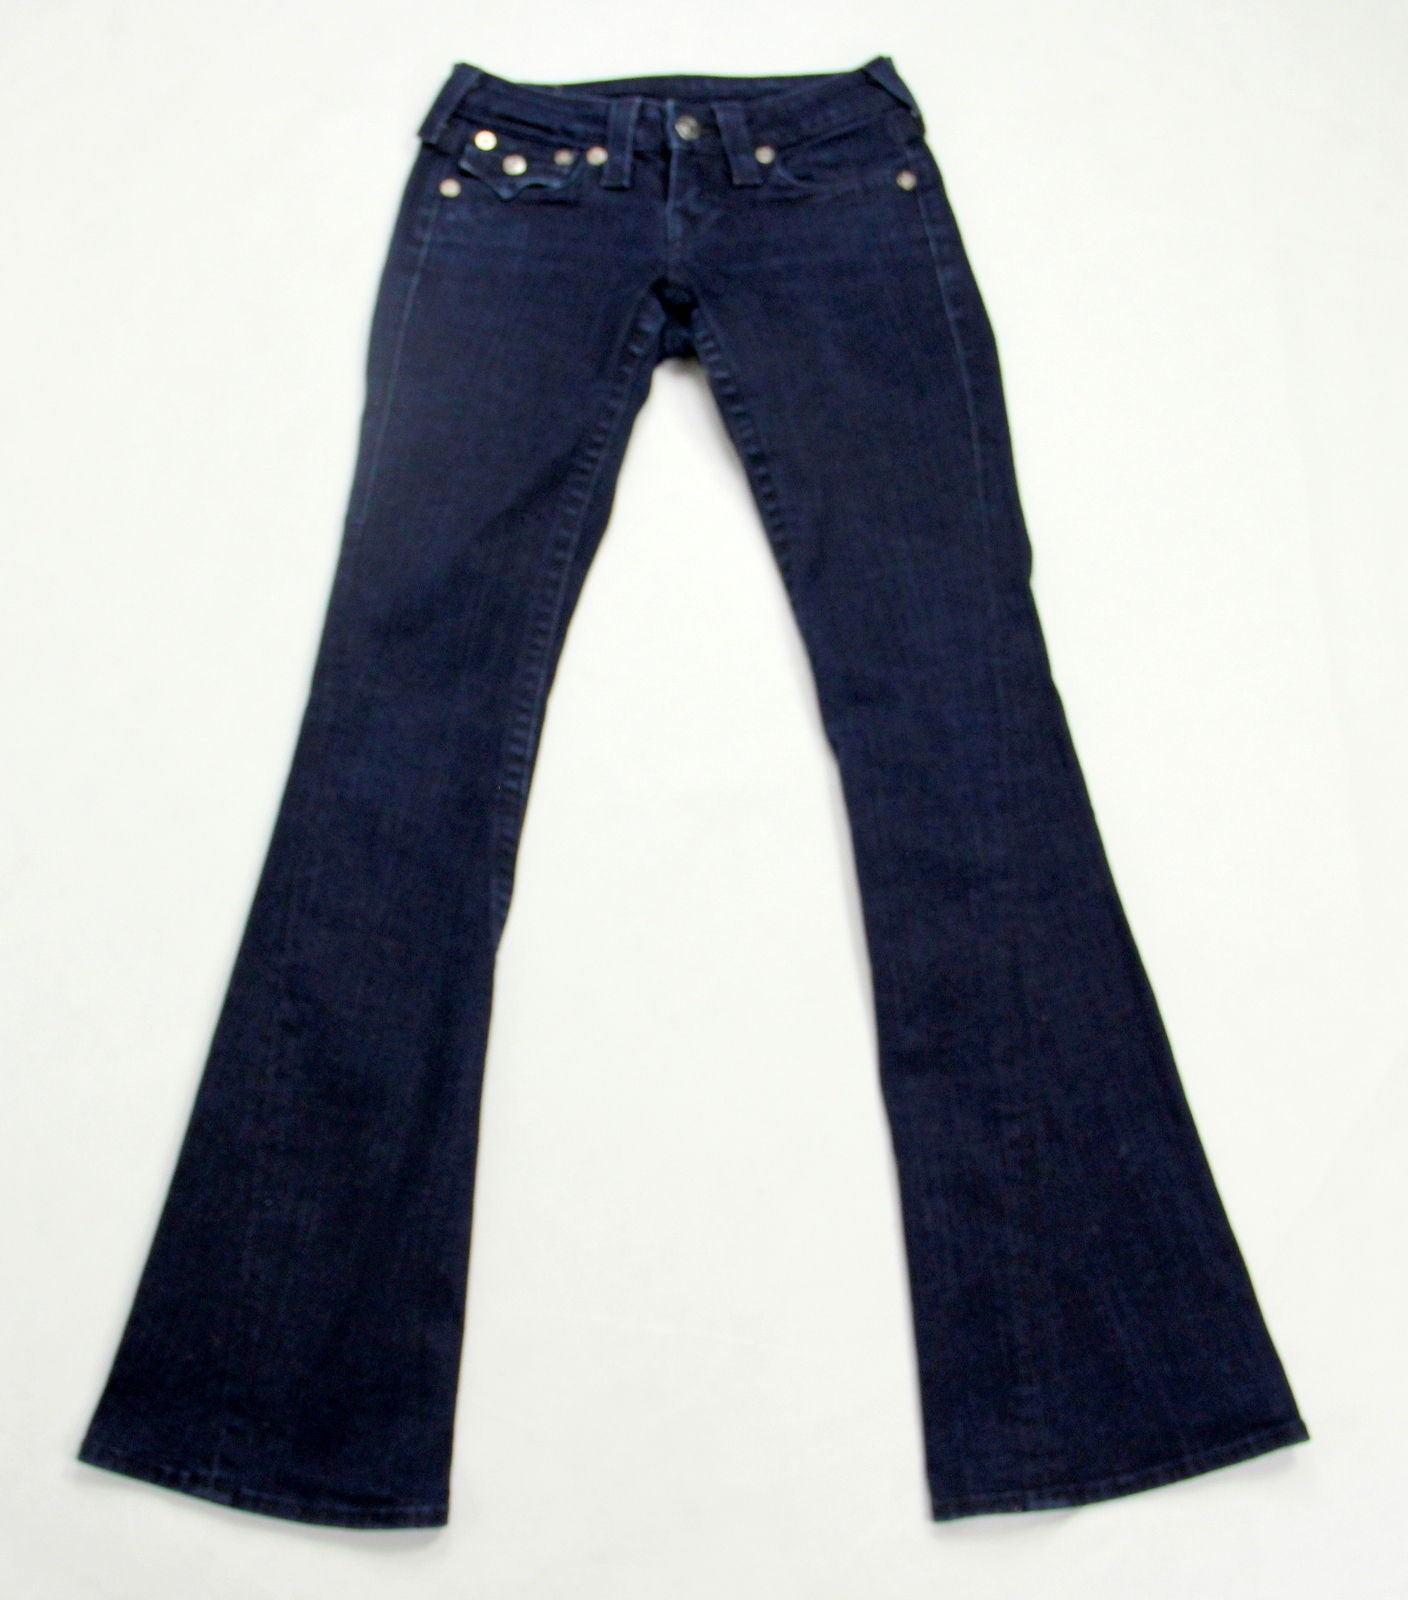 TRUE RELIGION Flared JEANS, SIZE 24 - secondfirst